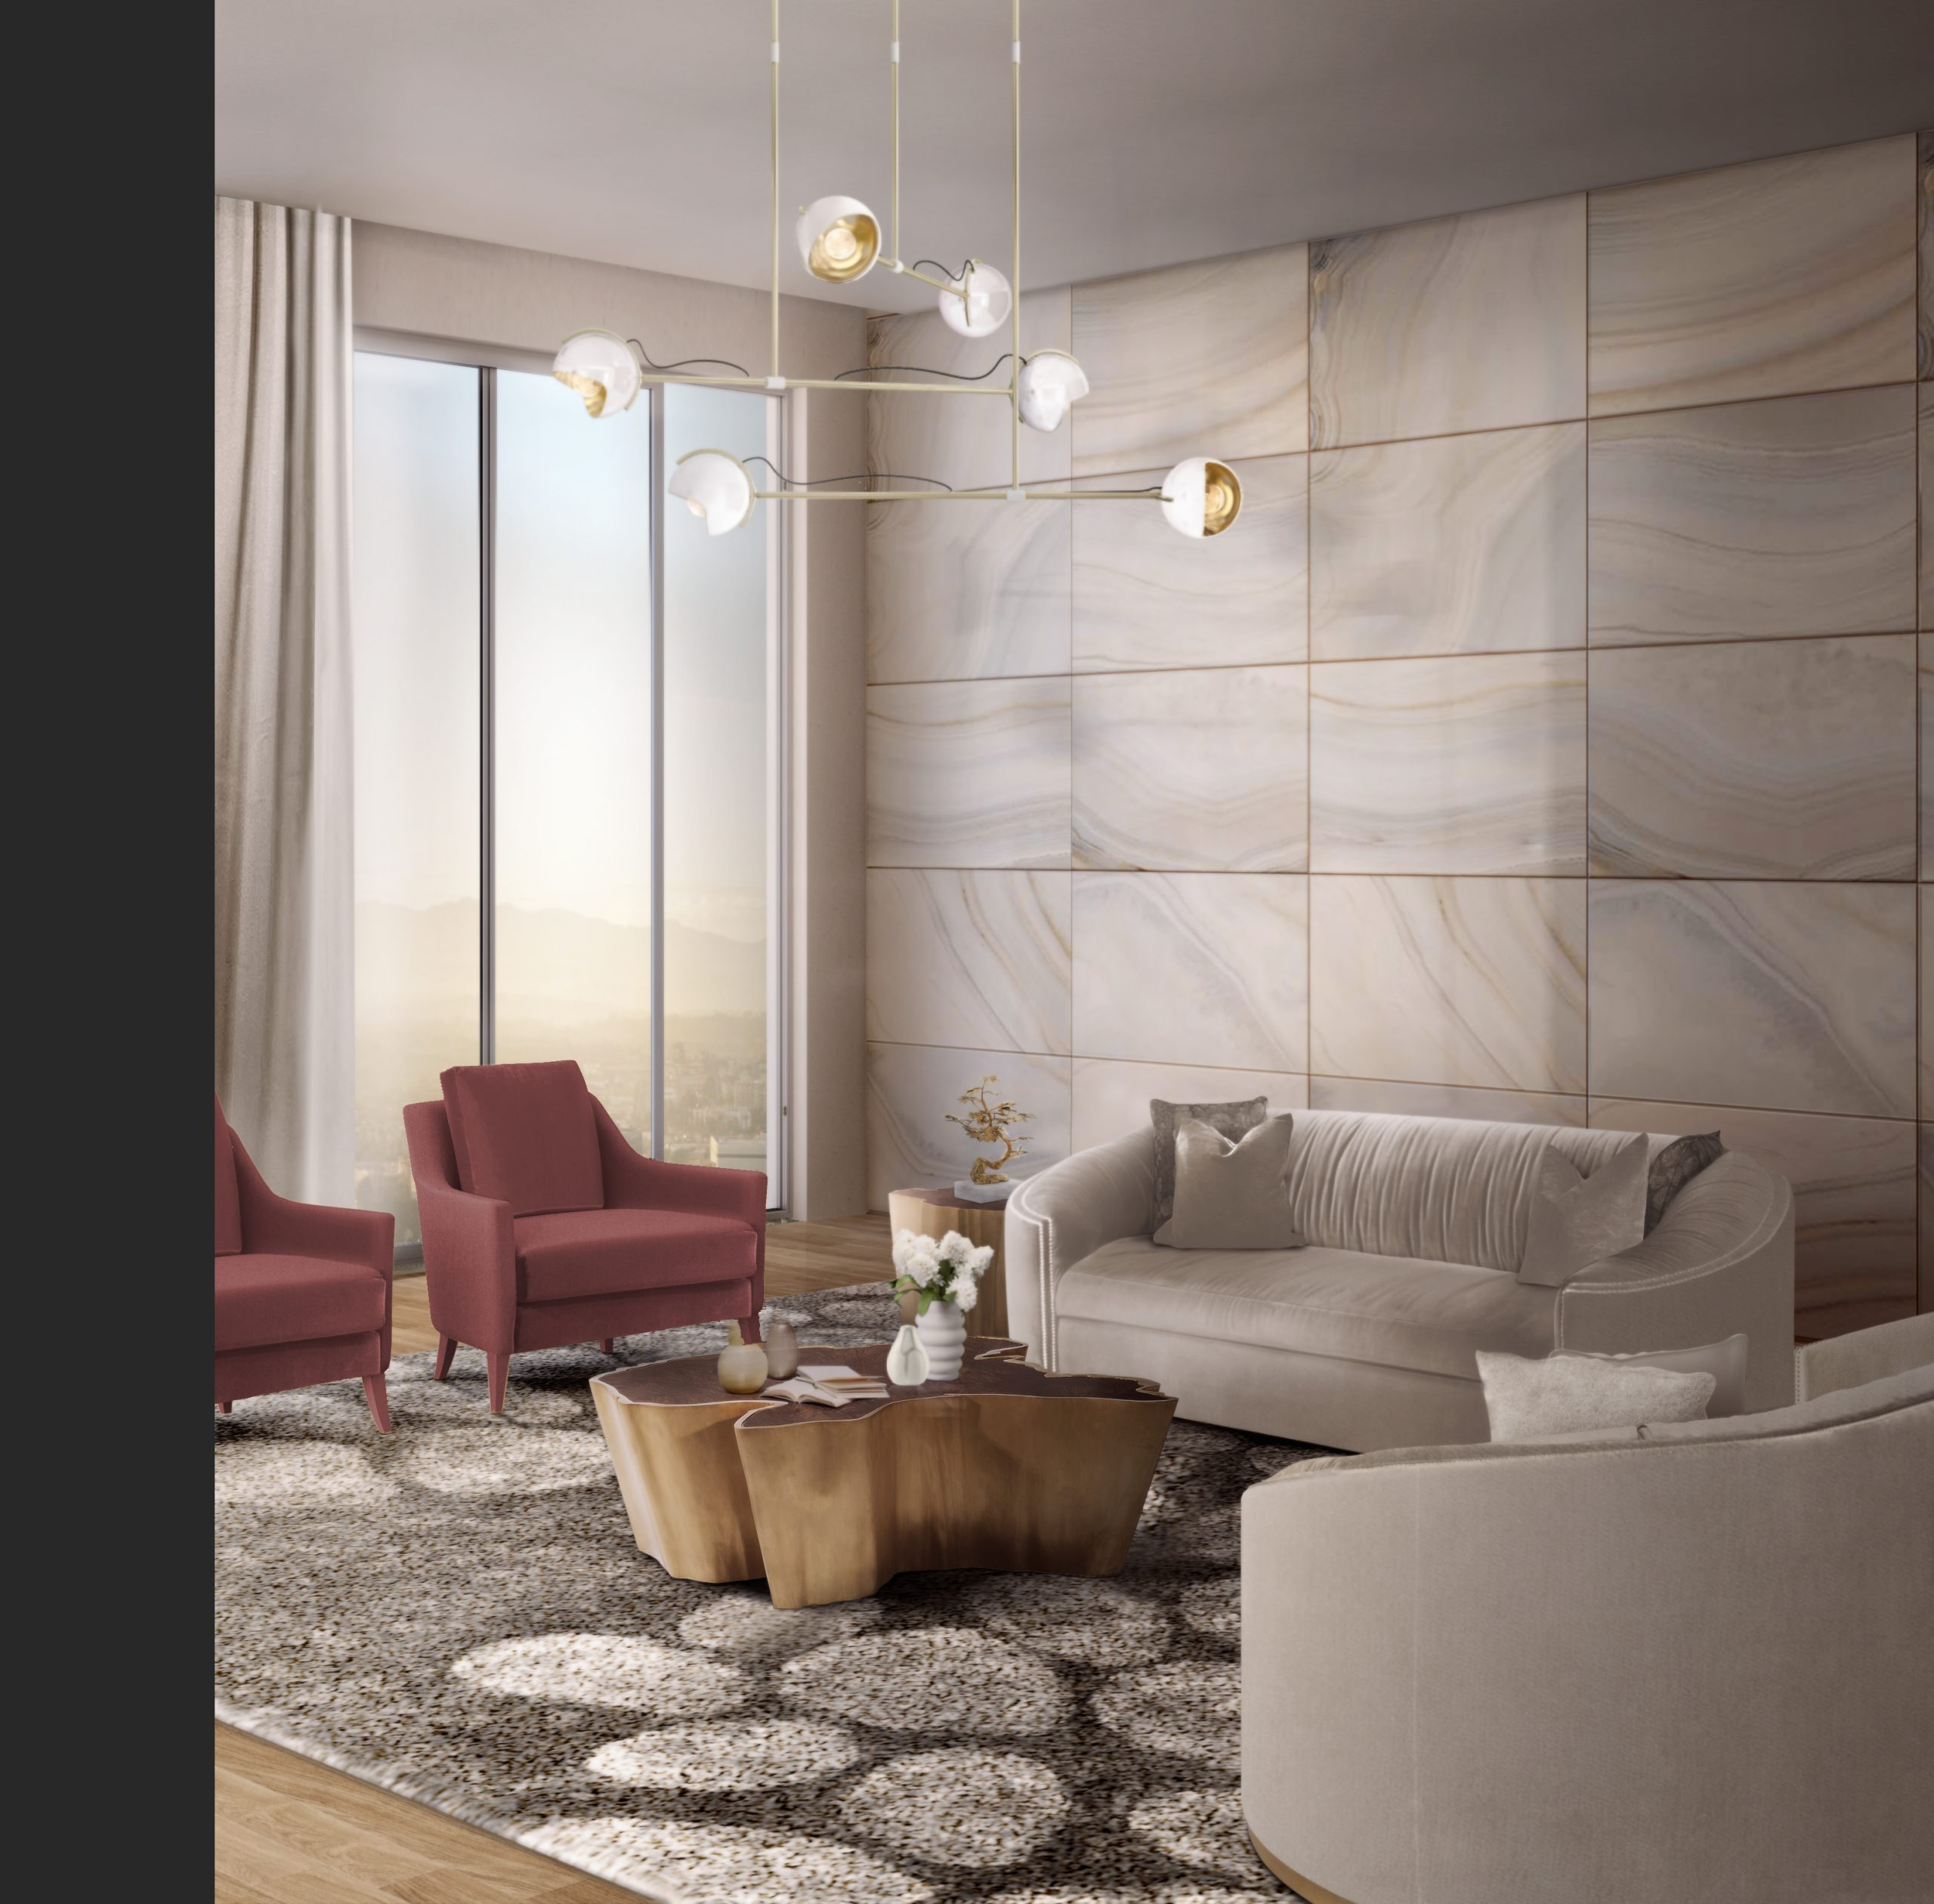 5 Fall Living Room Design Trends You Have to Check Before Rolling Up Your Sleeves for a Home Renovation! fall living room design trends 5 Fall Living Room Design Trends You Have to Check Before Rolling Up Your Sleeves for a Home Renovation! q scaled